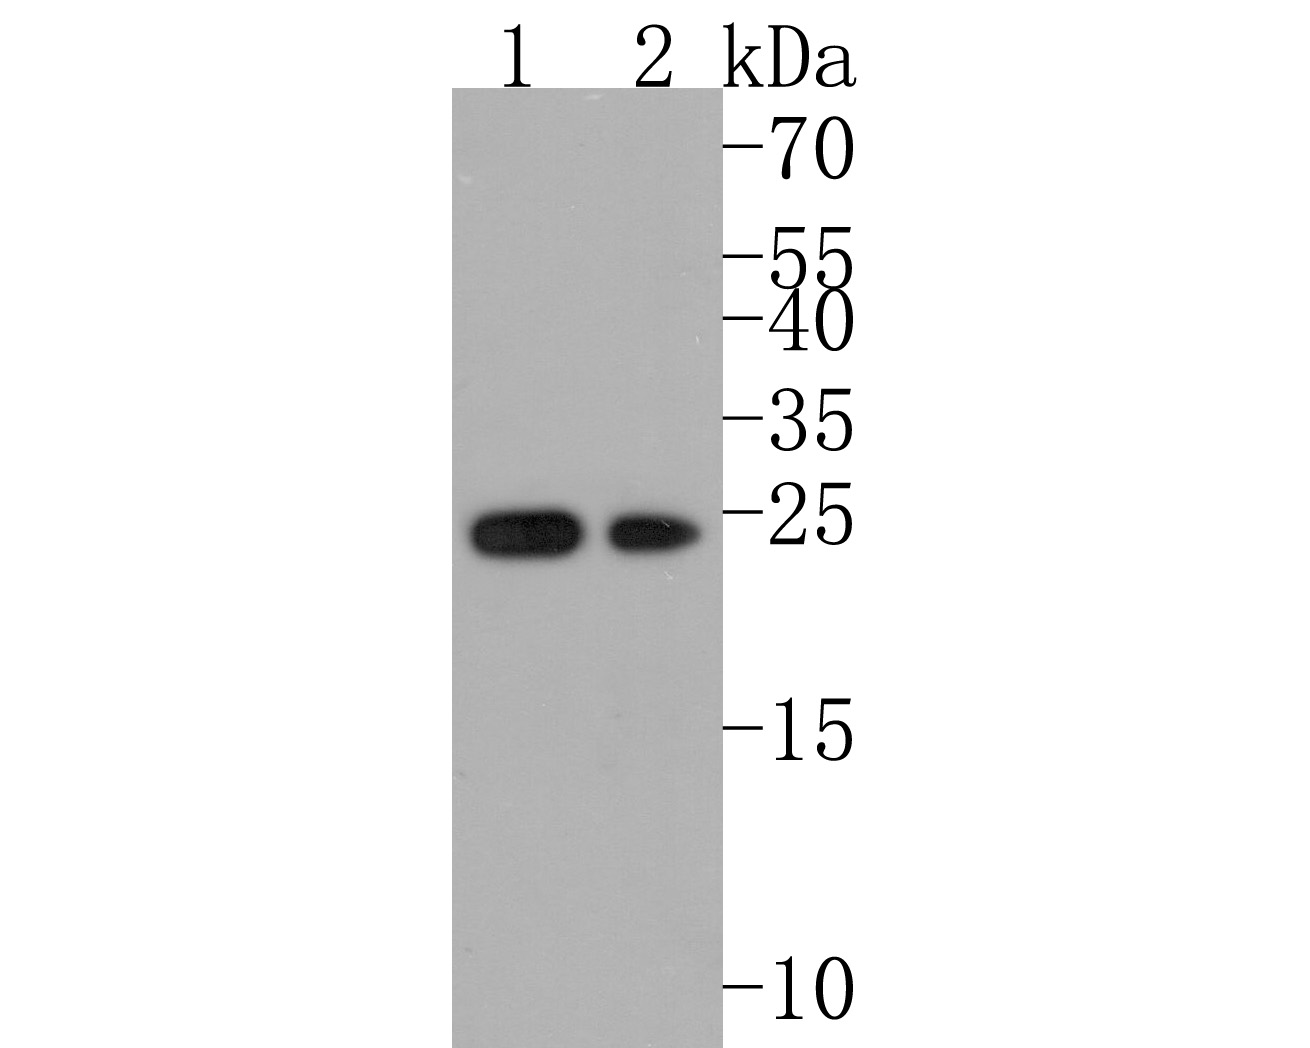 Western blot analysis of Peroxiredoxin 2 on different lysates using anti-Peroxiredoxin 2 antibody at 1/1,000 dilution.<br /> Positive control: <br /> Lane 1: Hela <br /> Lane 2: HepG2